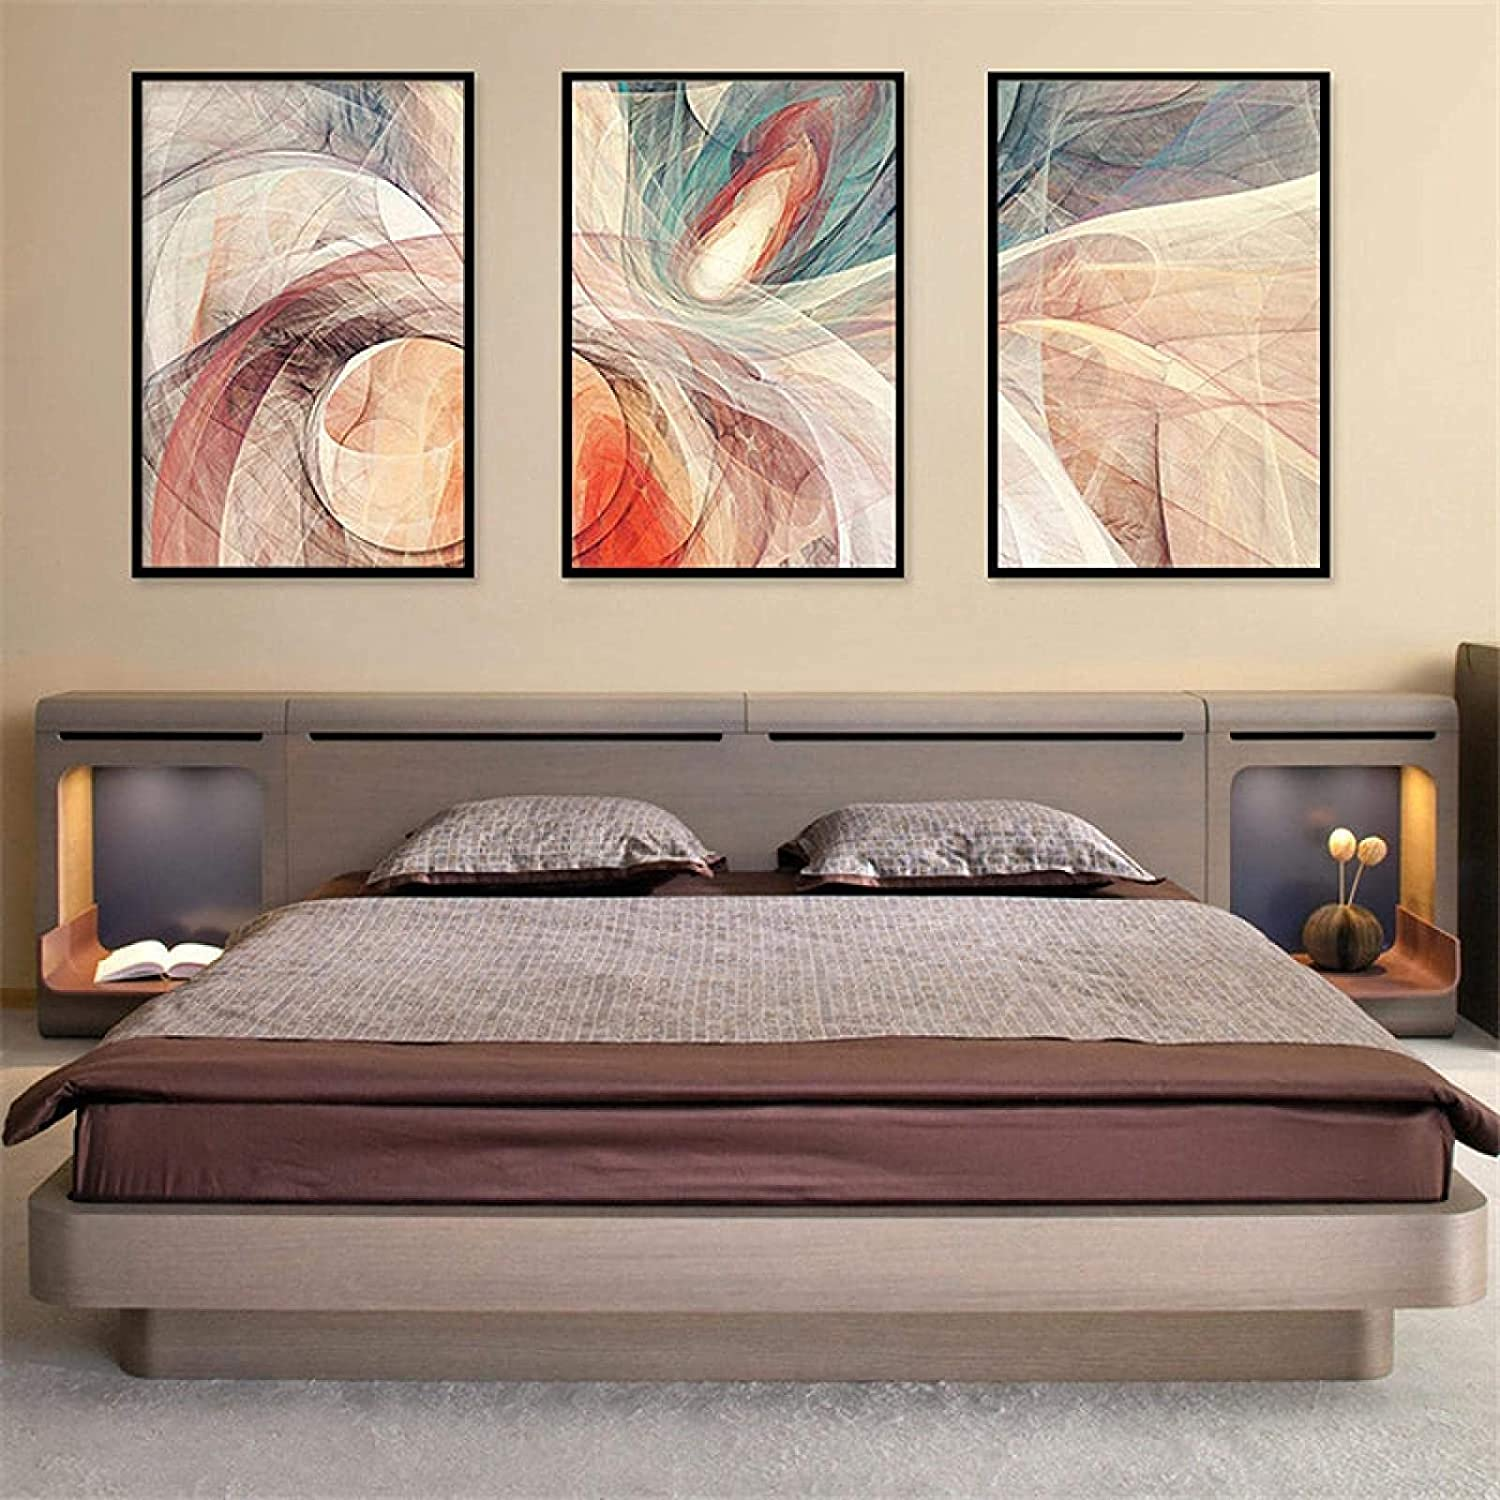 Nordic Our shop most popular Style 3 Piece 15.7x23.6in No Abstra Frame 40x60cm 100% quality warranty